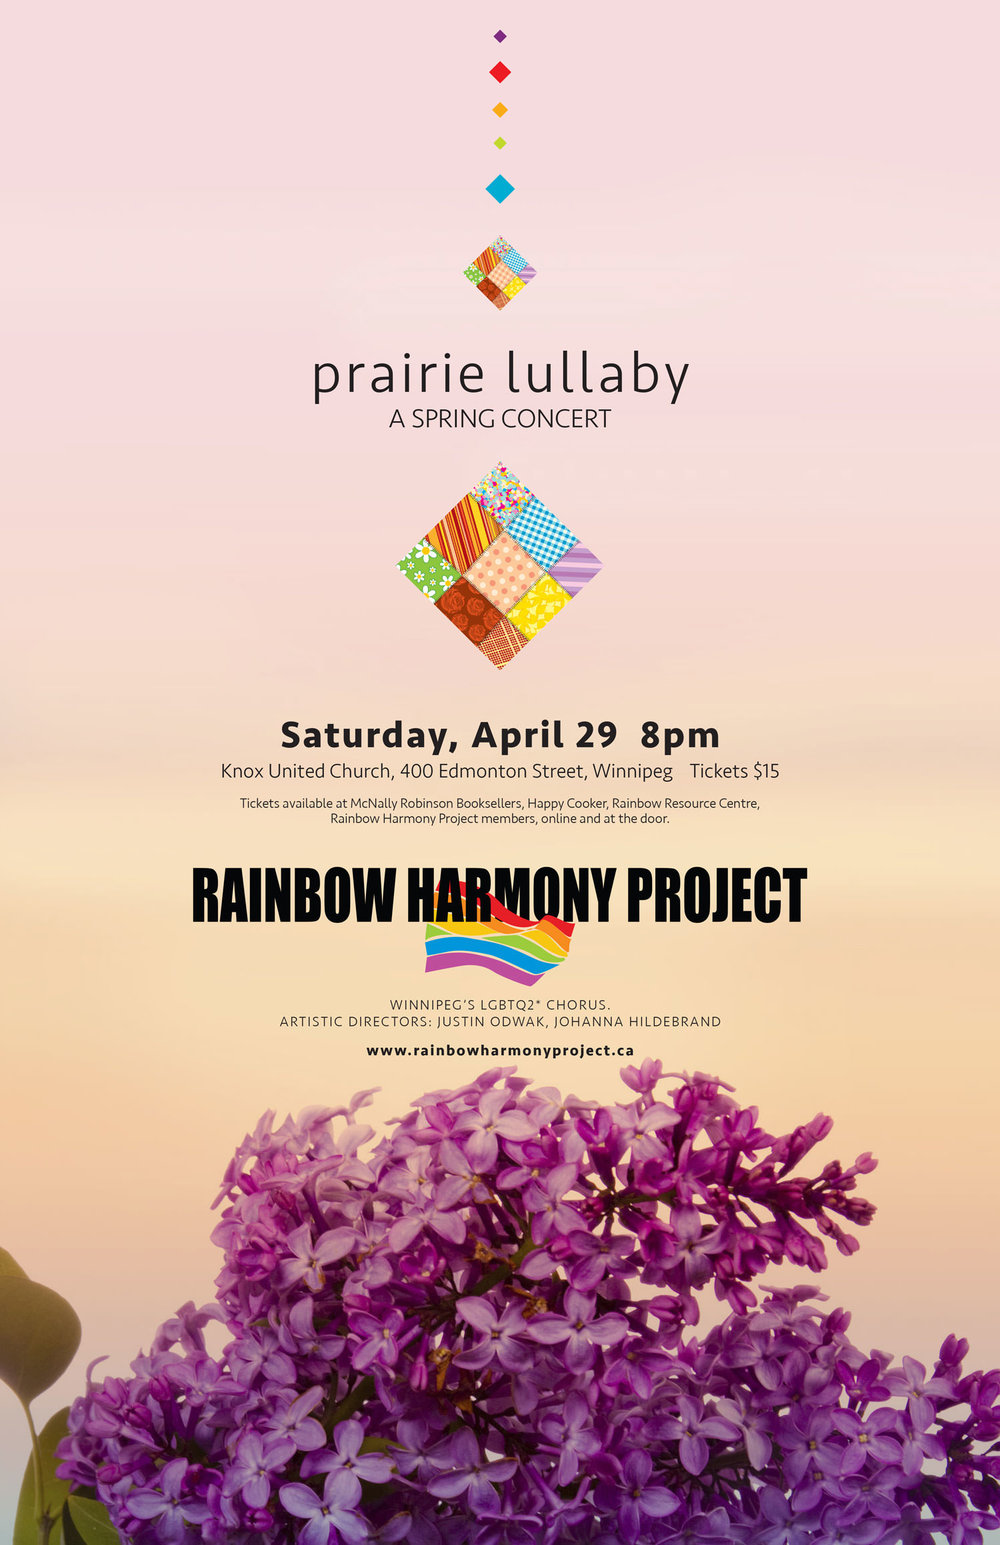 Rainbow Harmony Project SRPING CONCERT 2017 Prairie Lullaby